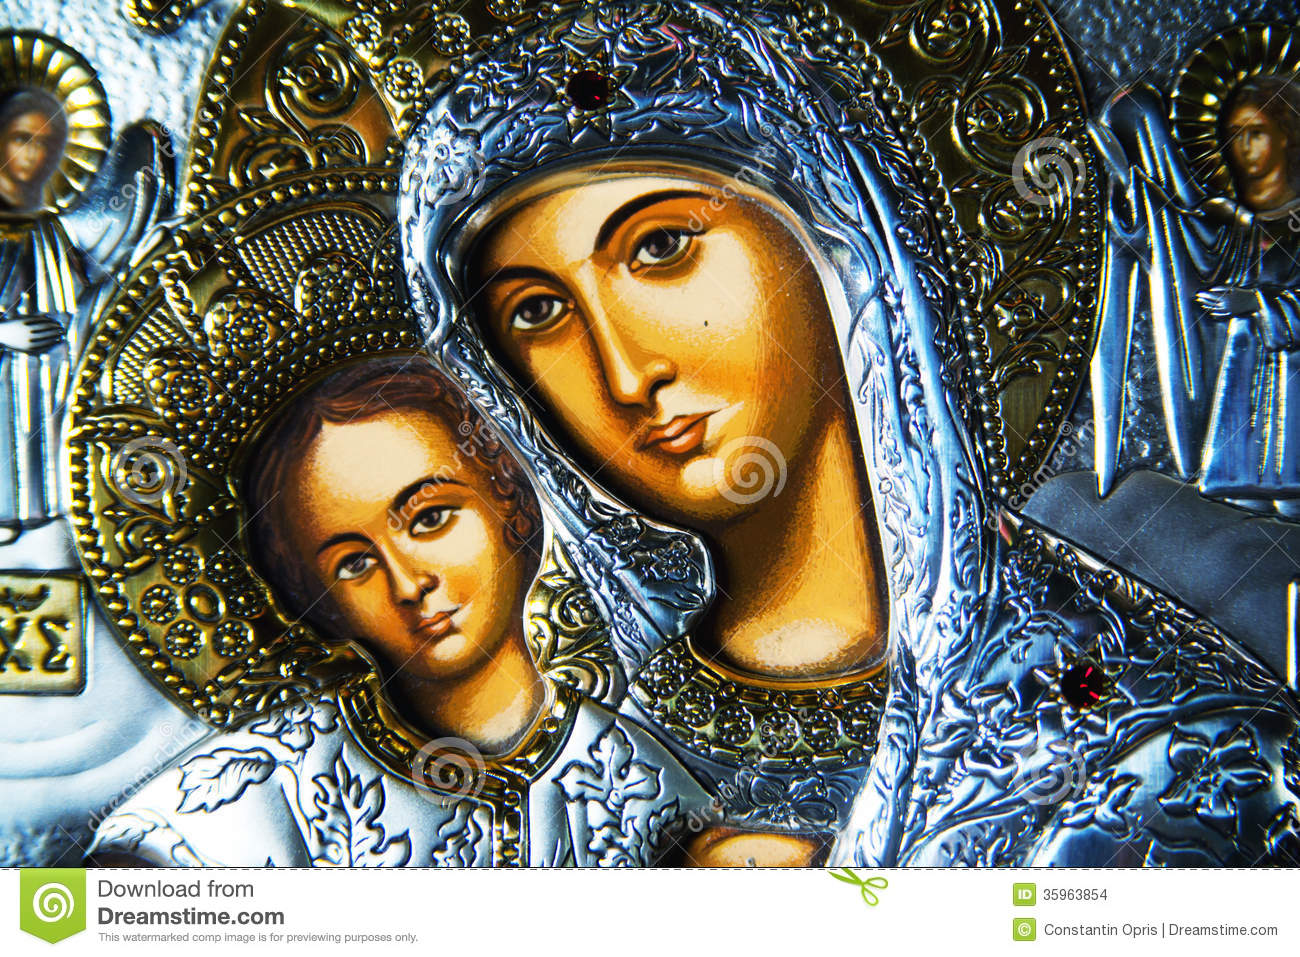 Closeup of an ornate religious icon of Virgin Mary and baby Jesus.